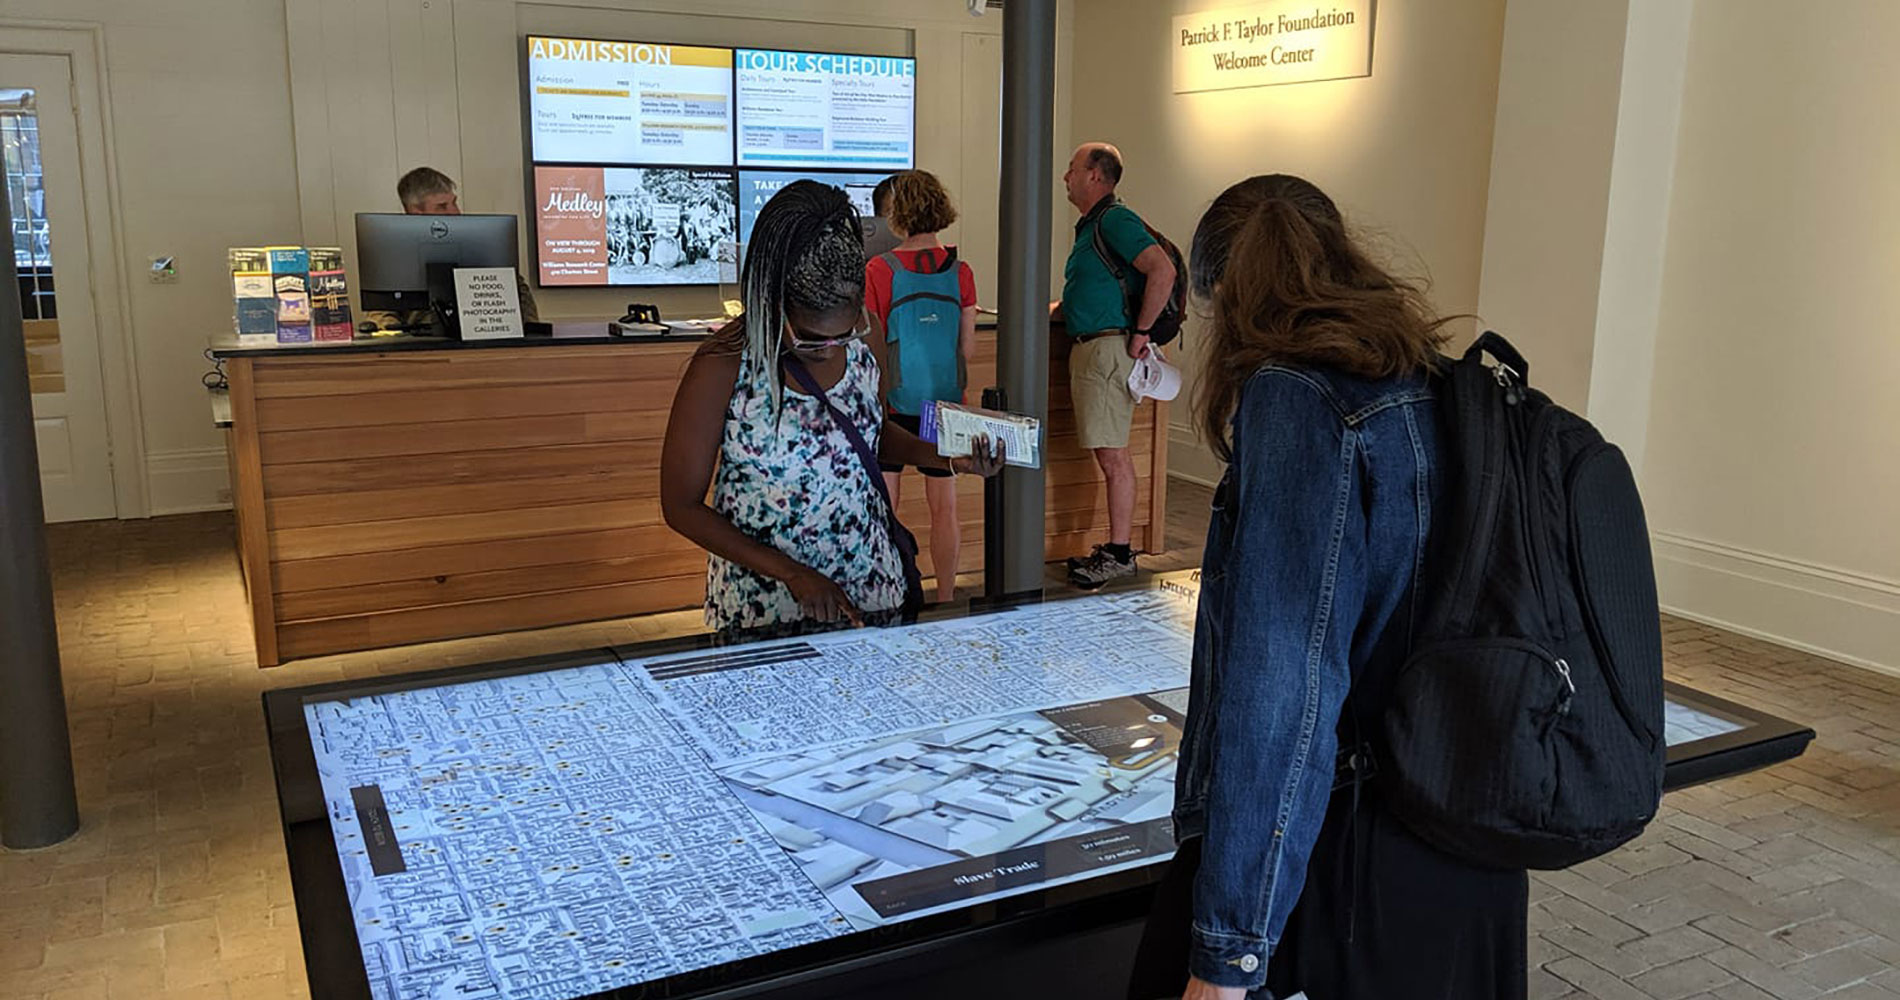 The French Quarter Tours touch table interactive and mobile app allow visitors to explore New Orleans